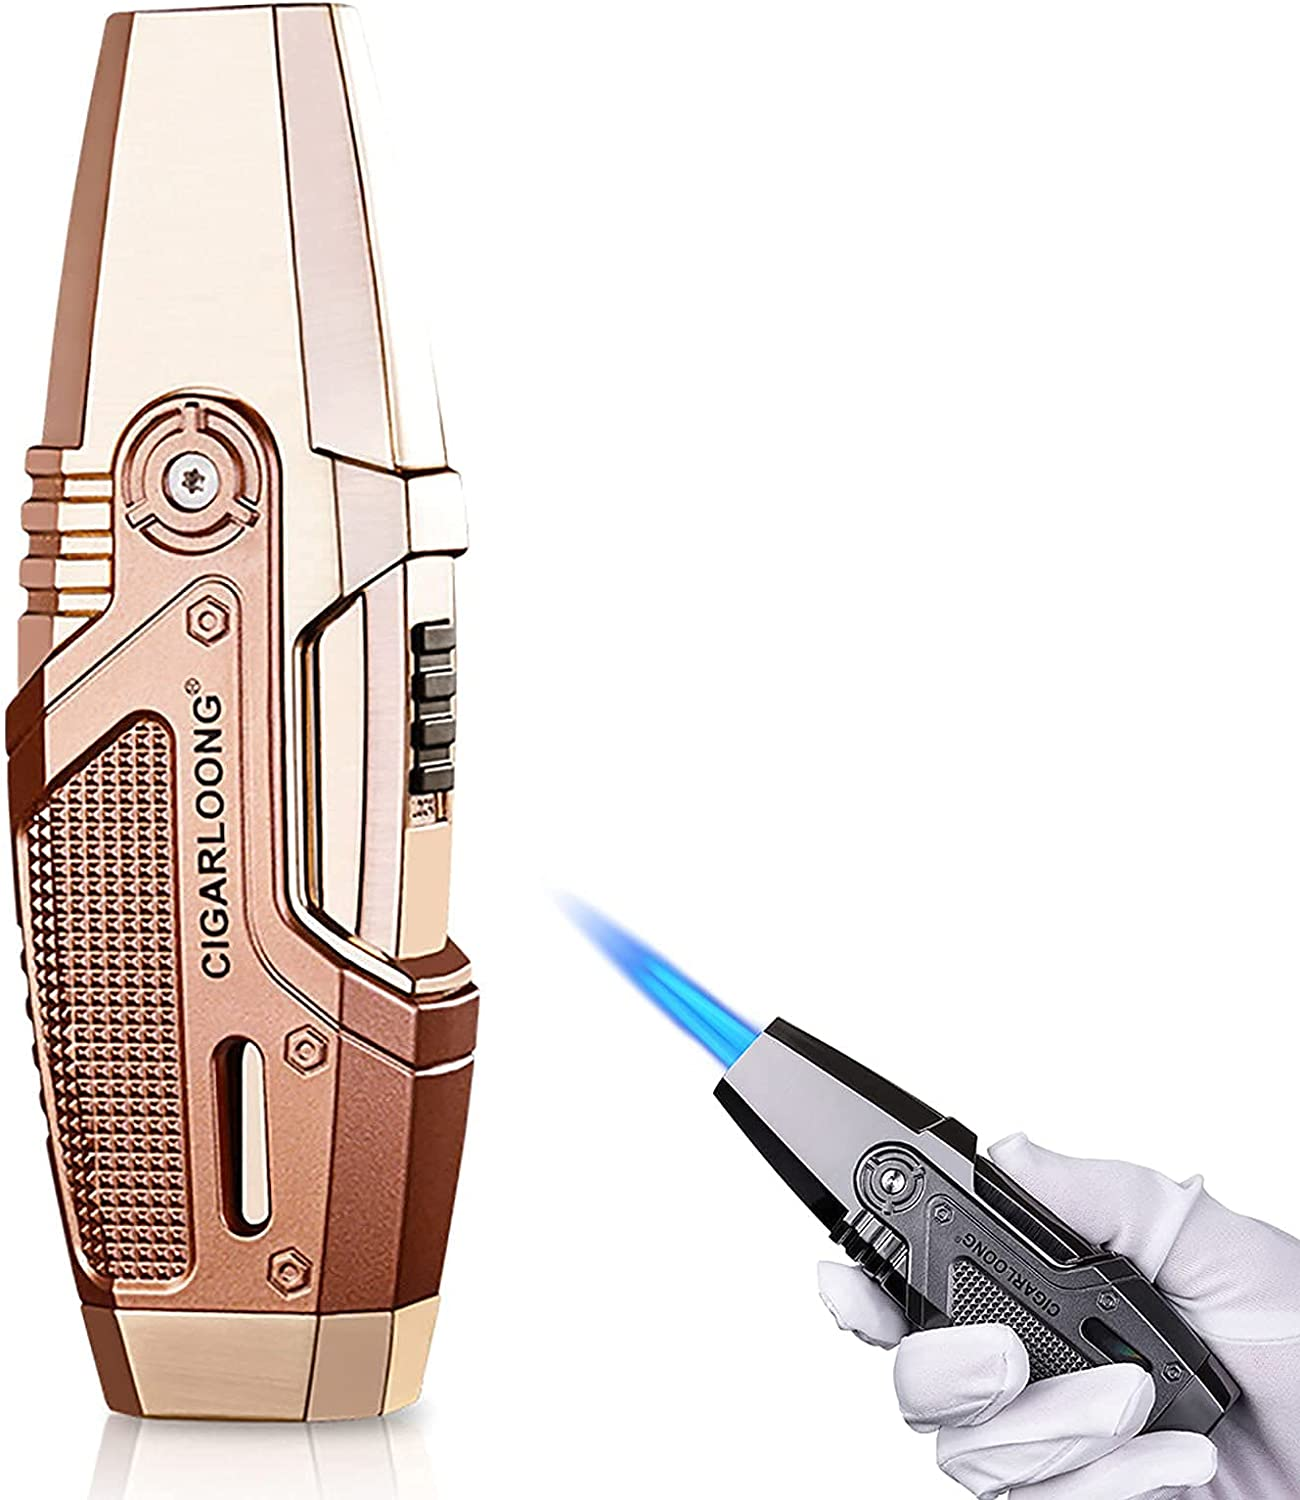 PLUY Titanium Alloy Cigar Austin Mall Lighter Torch Jet B Max 48% OFF 2 Flame Refillable